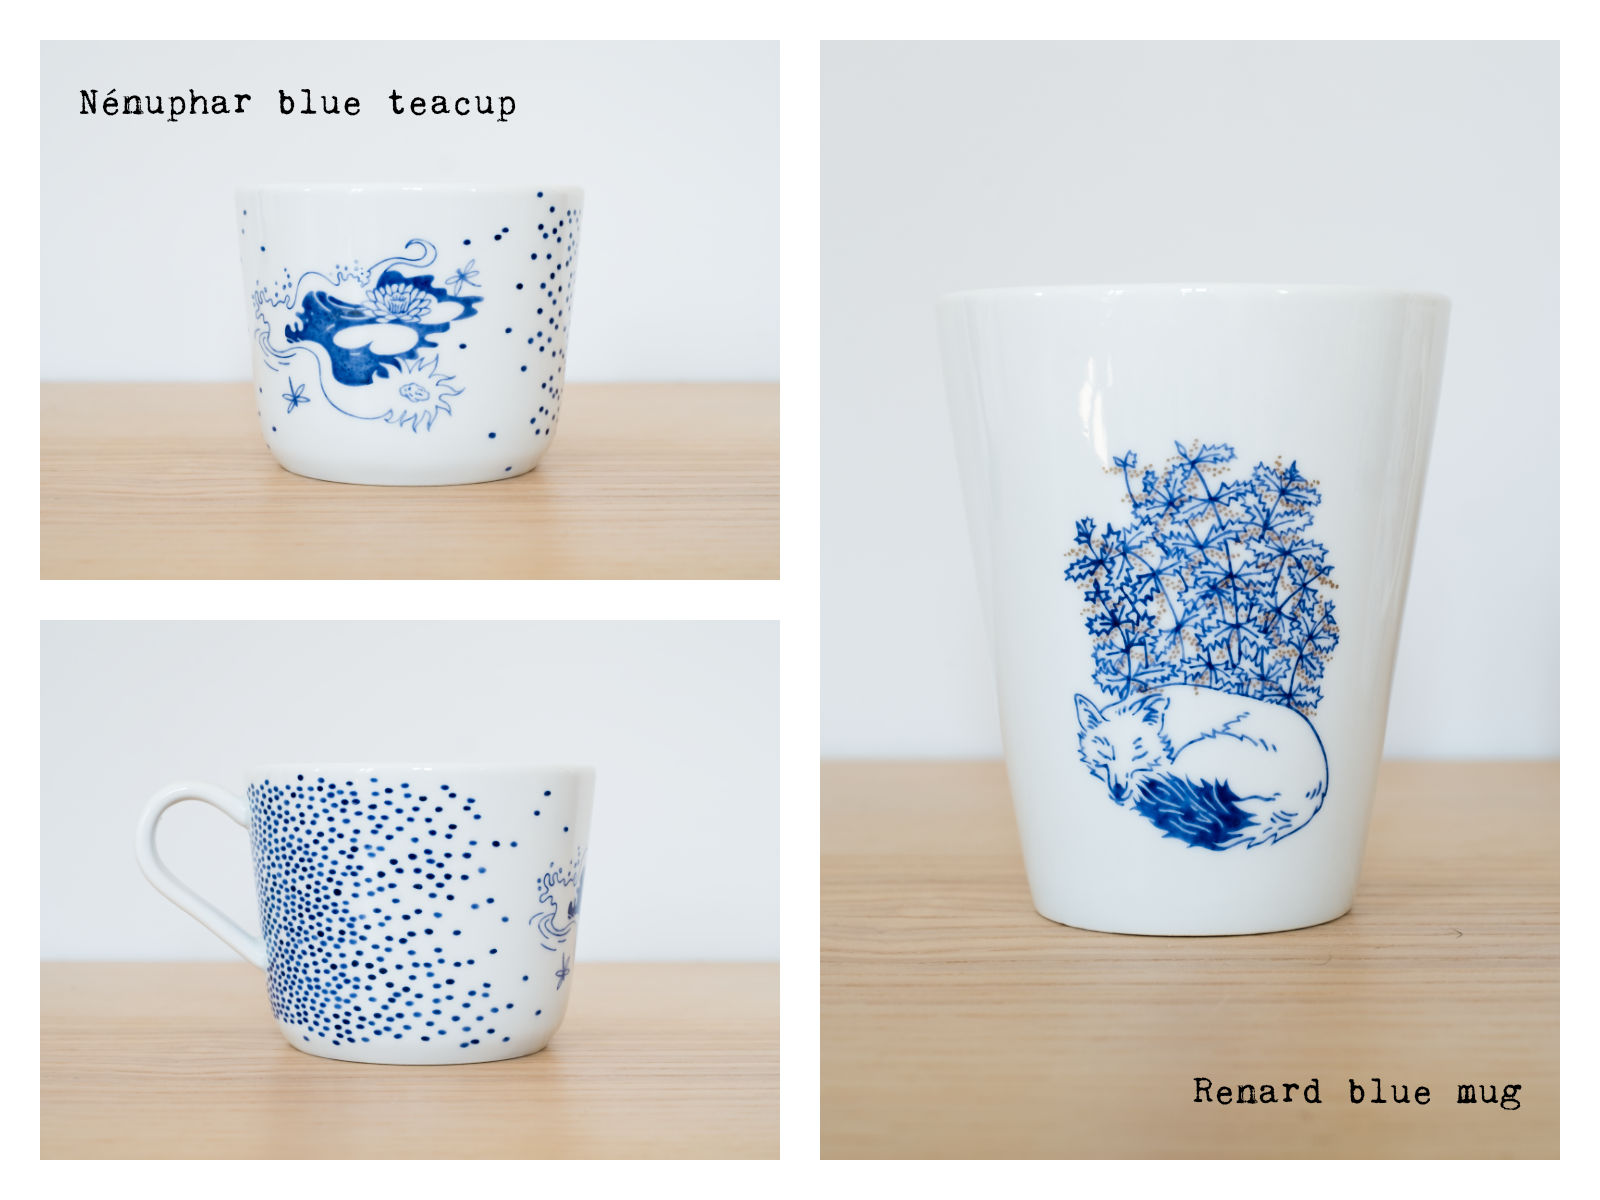 """Nénuphar"" blue teacup & ""Renard"" blue mug from ""Enchanteresse"", a collection of painted porcelains by messalyn."